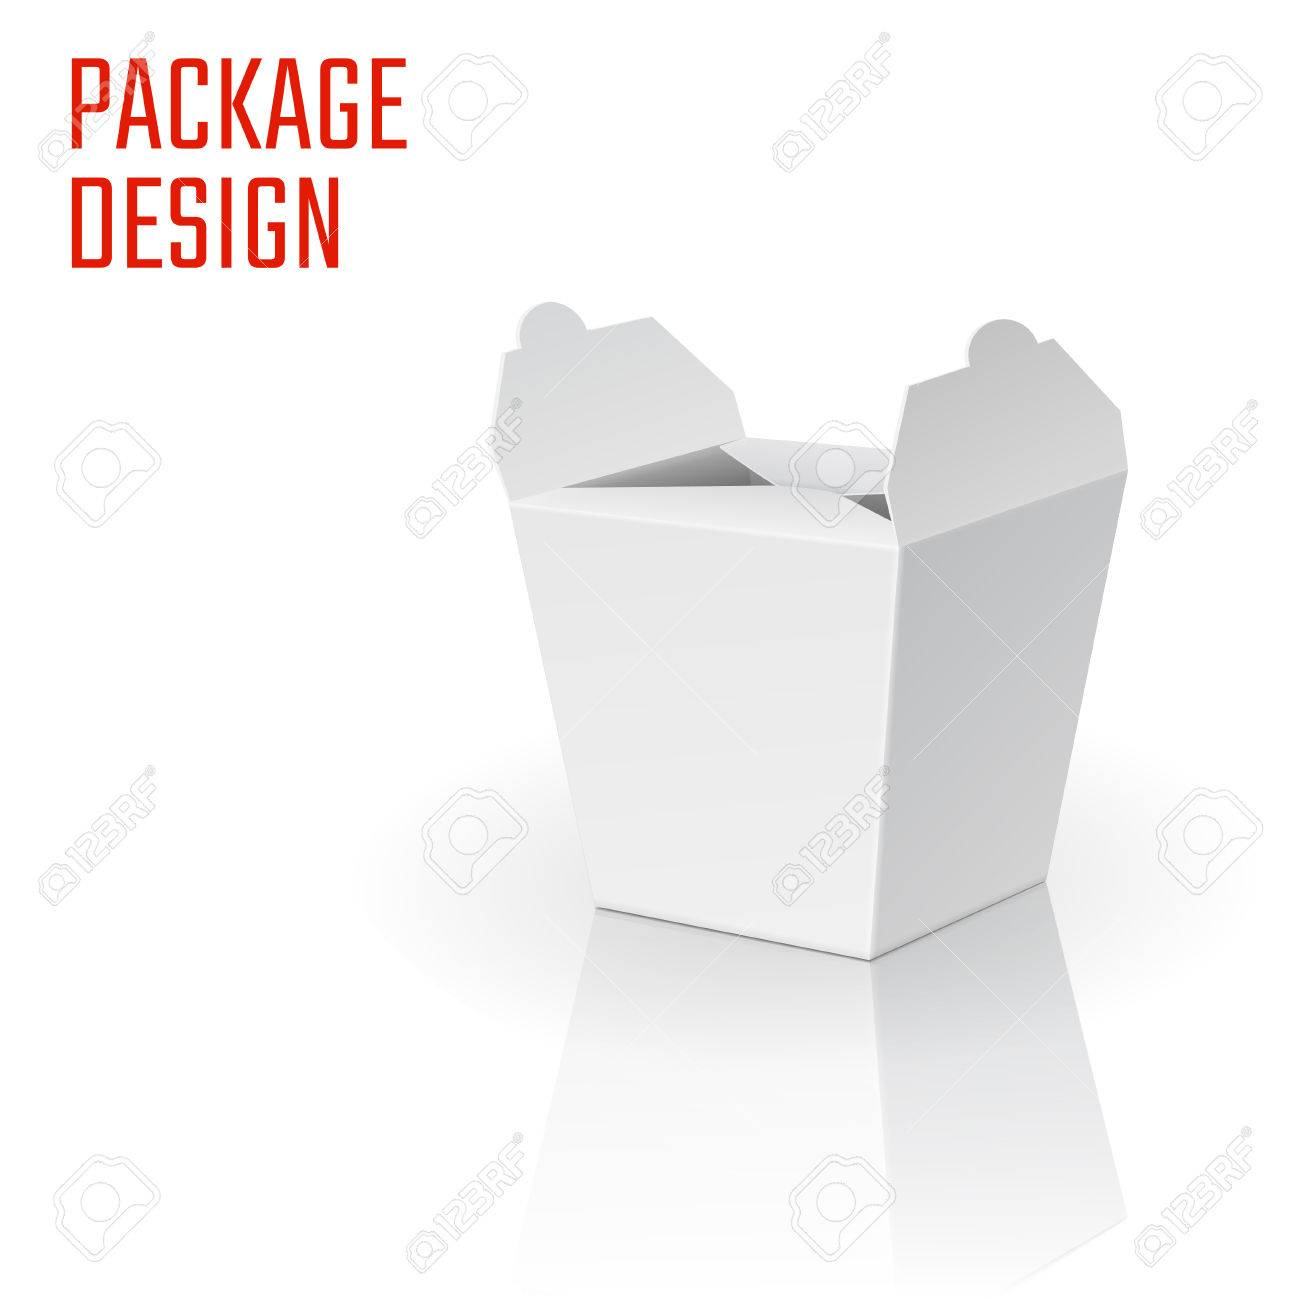 Vector illustration of clear craft box for design website vector illustration of clear craft box for design website background banner retail jeuxipadfo Gallery